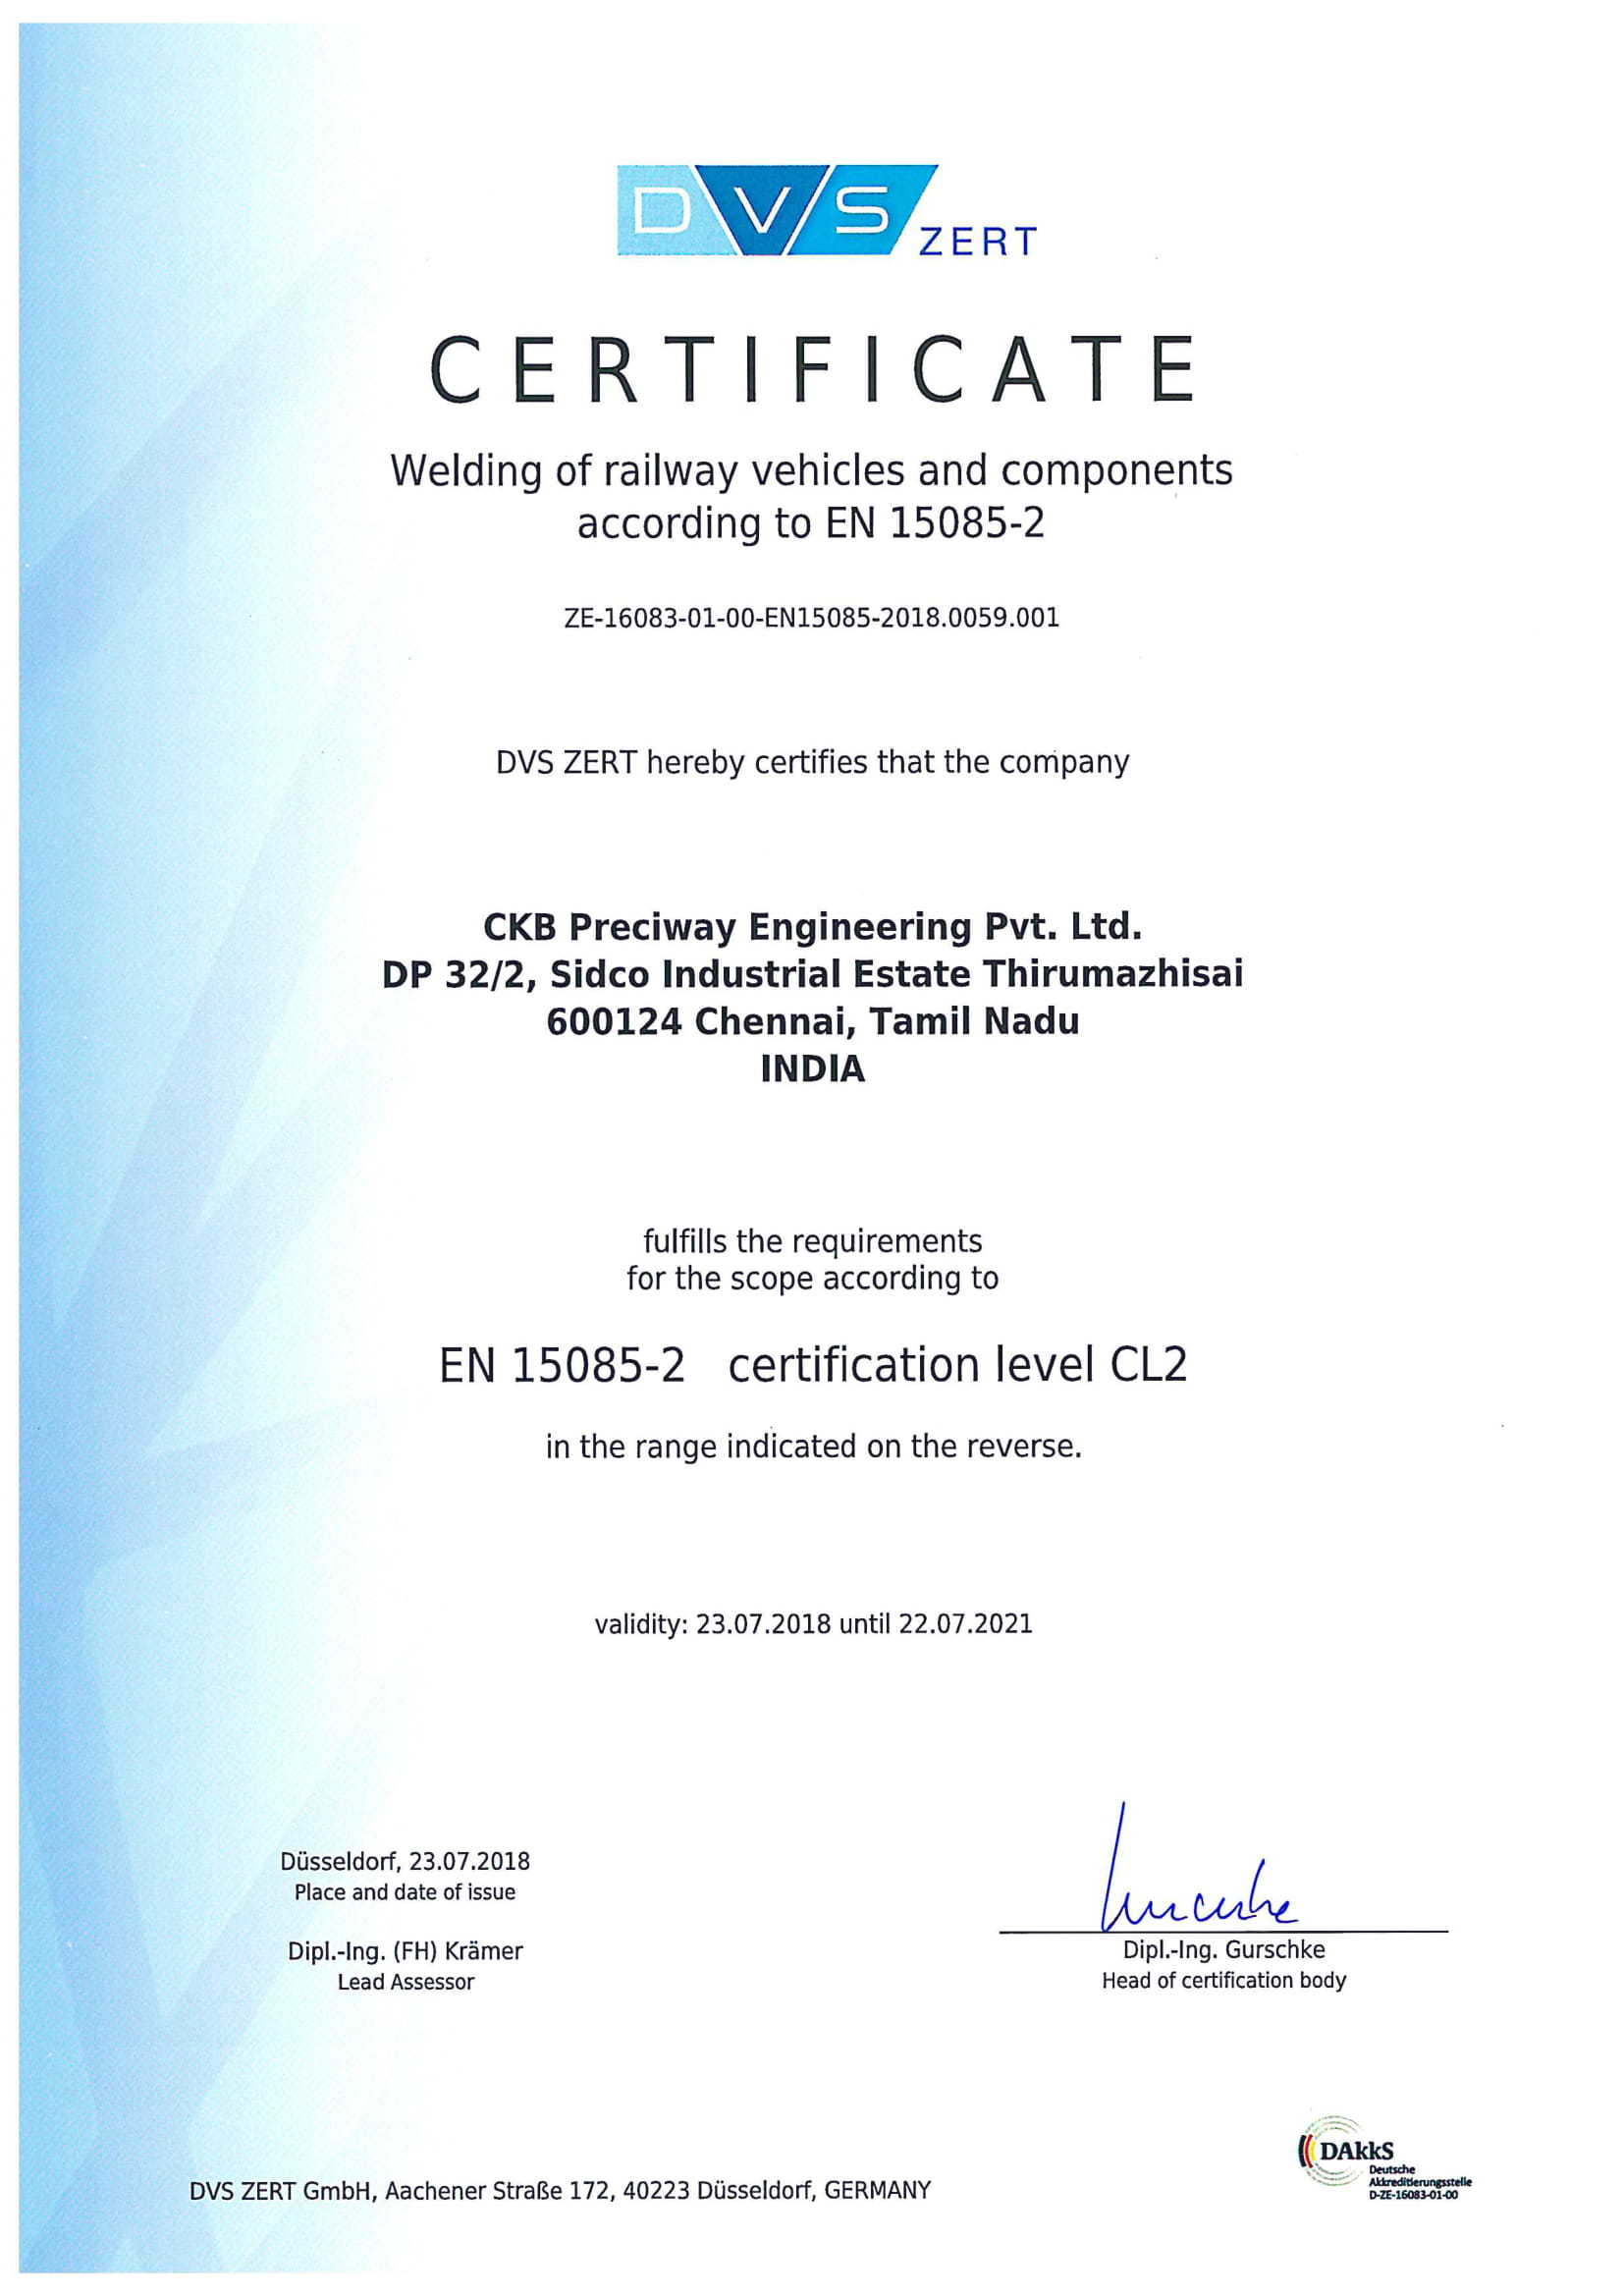 EN 15085-2 CL2 Certification In Process